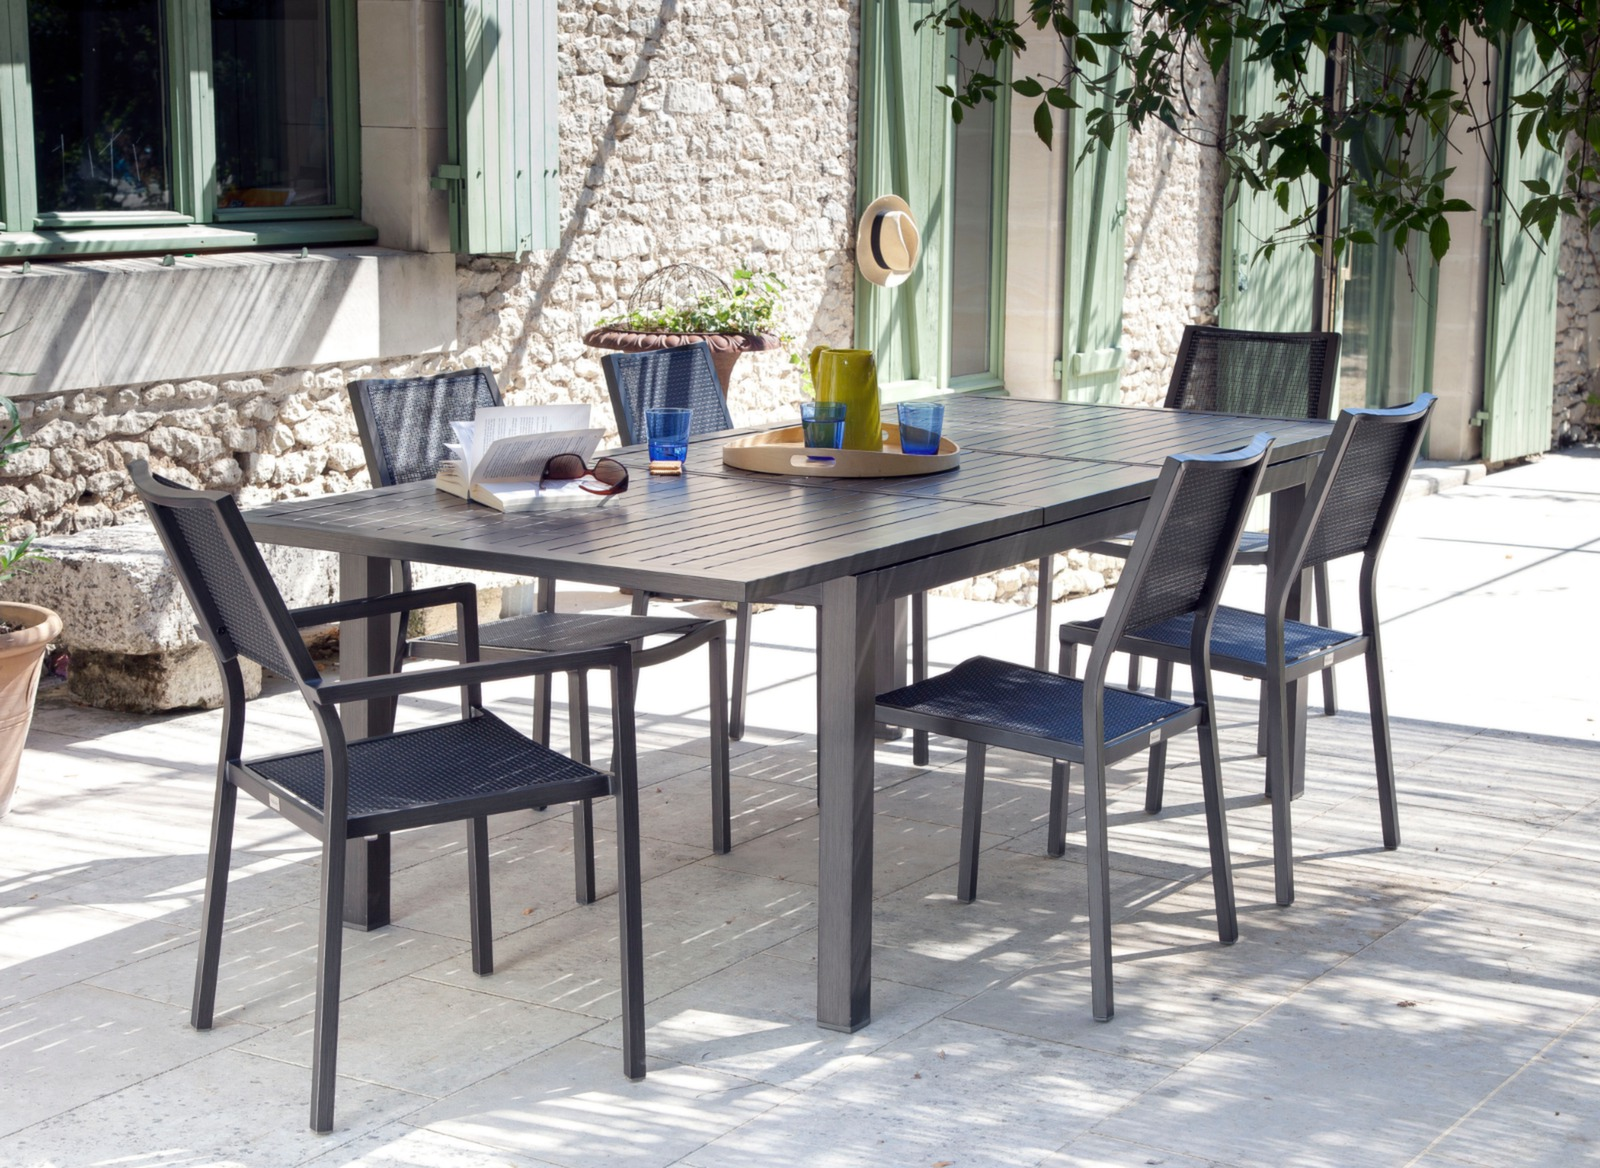 Table extensible milano 180 240 x 100 cm tables de jardin meubles de jard - Cote table vente en ligne ...